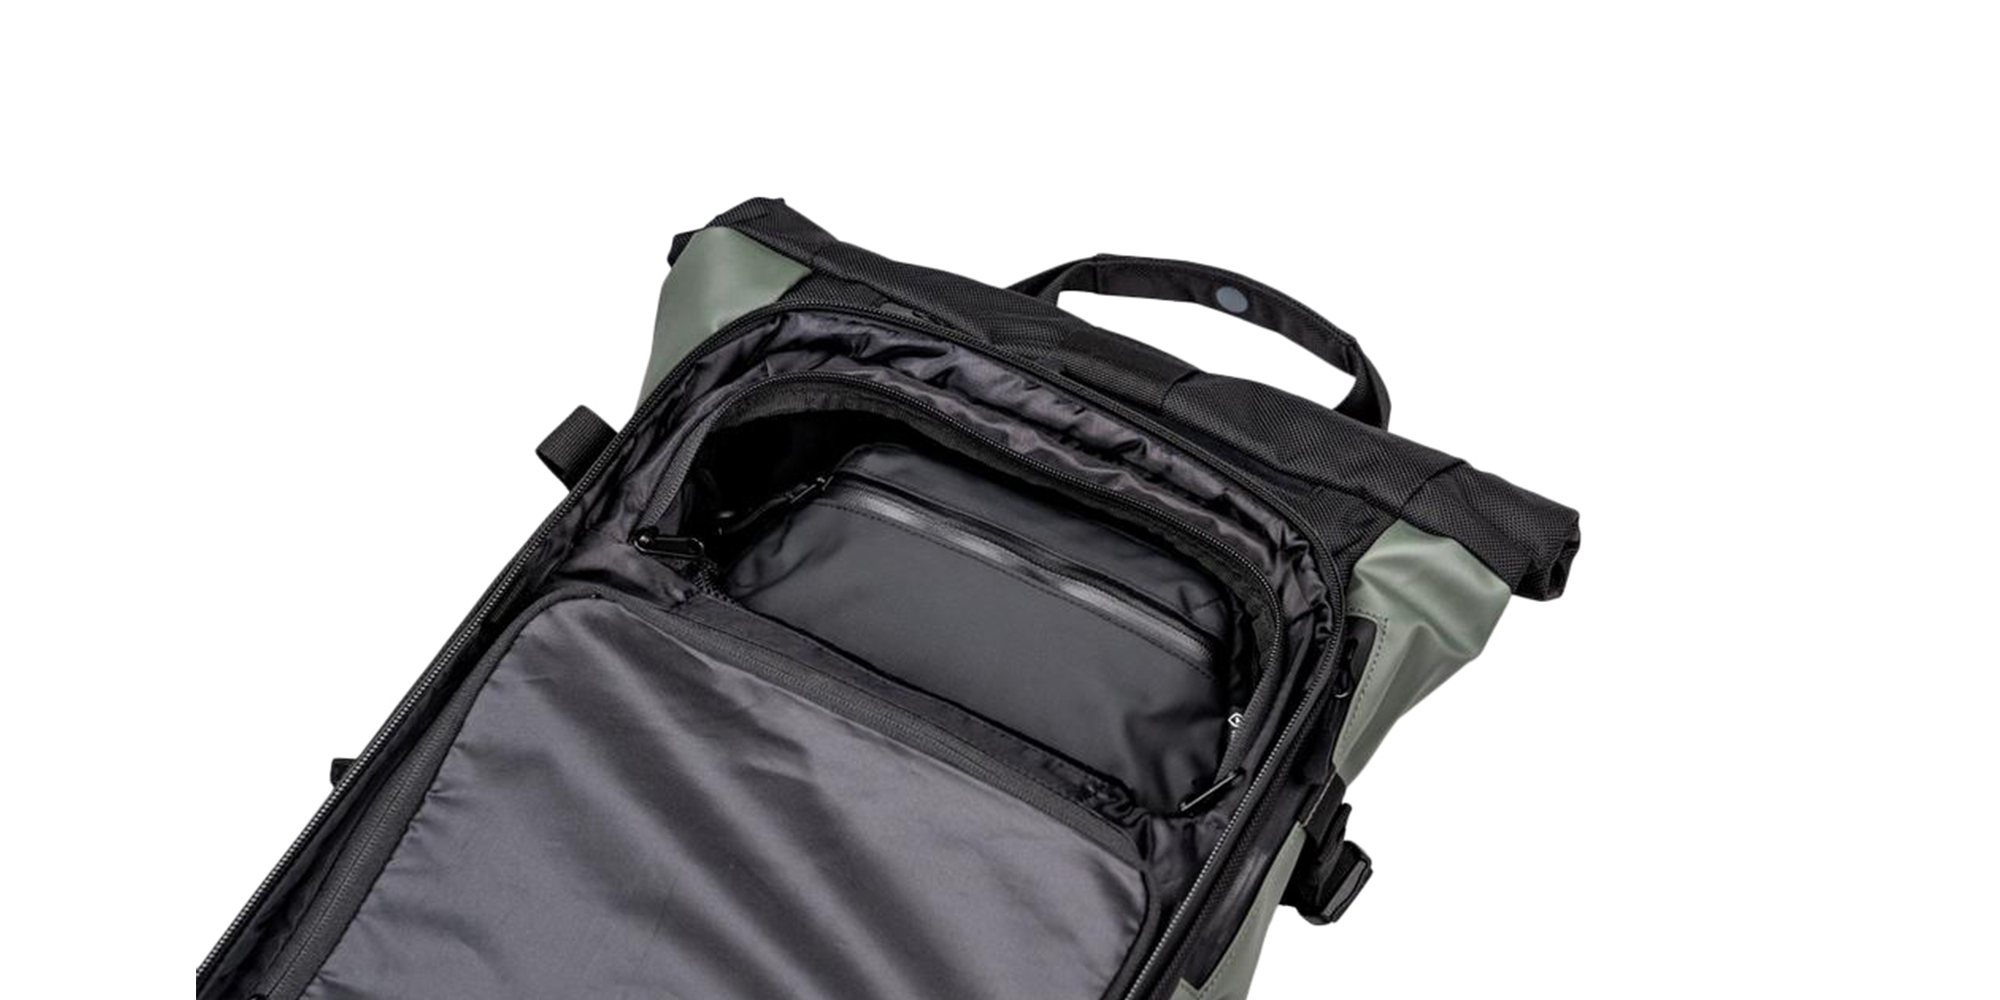 Wandrd Tech Pouch Large in the top compartment of the Prvke backpack